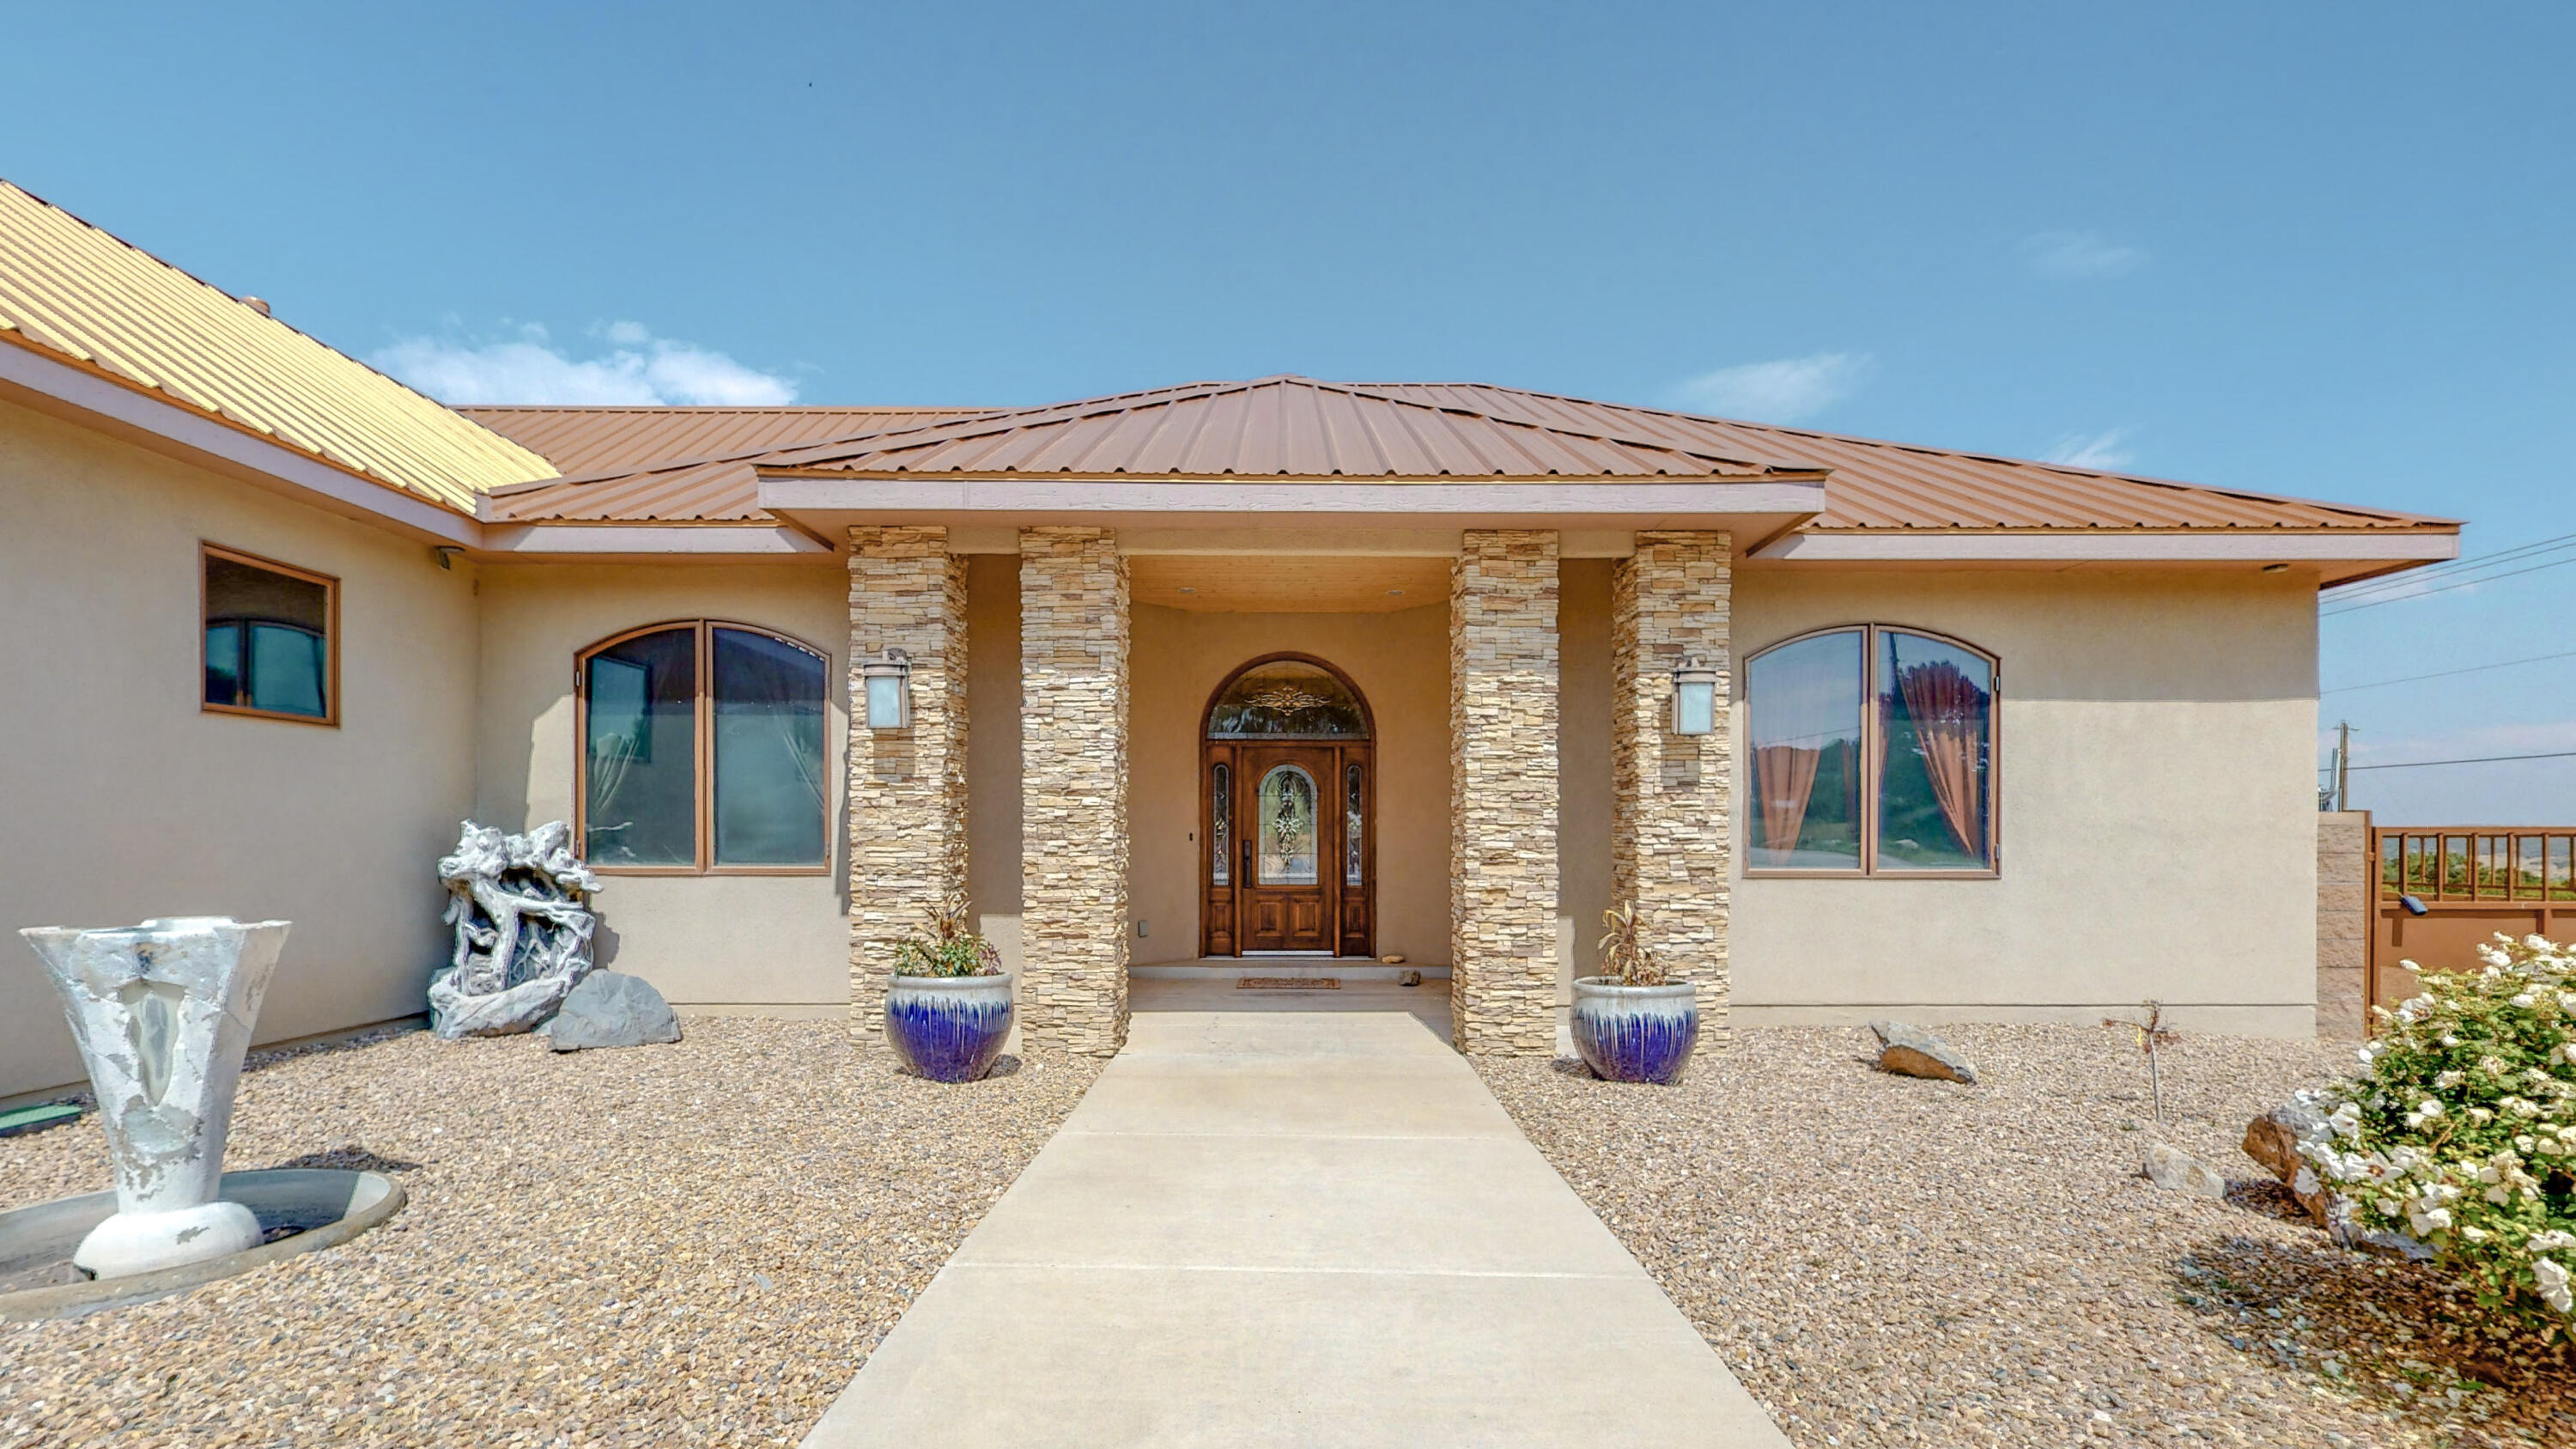 Beautiful custom home on 2 acres of land located in Sandia Mountain Ranch a private mountain community. Builder/Owner has spared no attention to detail! This luxury gem offers soaring 11' ceilings, knotty alder doors and cabinetry, travertine walls in kitchen & baths, granite countertops, water softener system, gourmet kitchen with induction kitchen cooktop, built in refrigerator, double oven and bread warmer! Refrigerated A/C, covered outdoor patio with built in BBQ grill, RV pad and insulated finished garage with epoxy flooring. Water, propane and electricity located behind the home is readily available for future addition. Easy access to I-40 and is approximately 20 minutes from ABQ, Kirtland Air Force Base. Close distance to shopping, restaurants and malls.